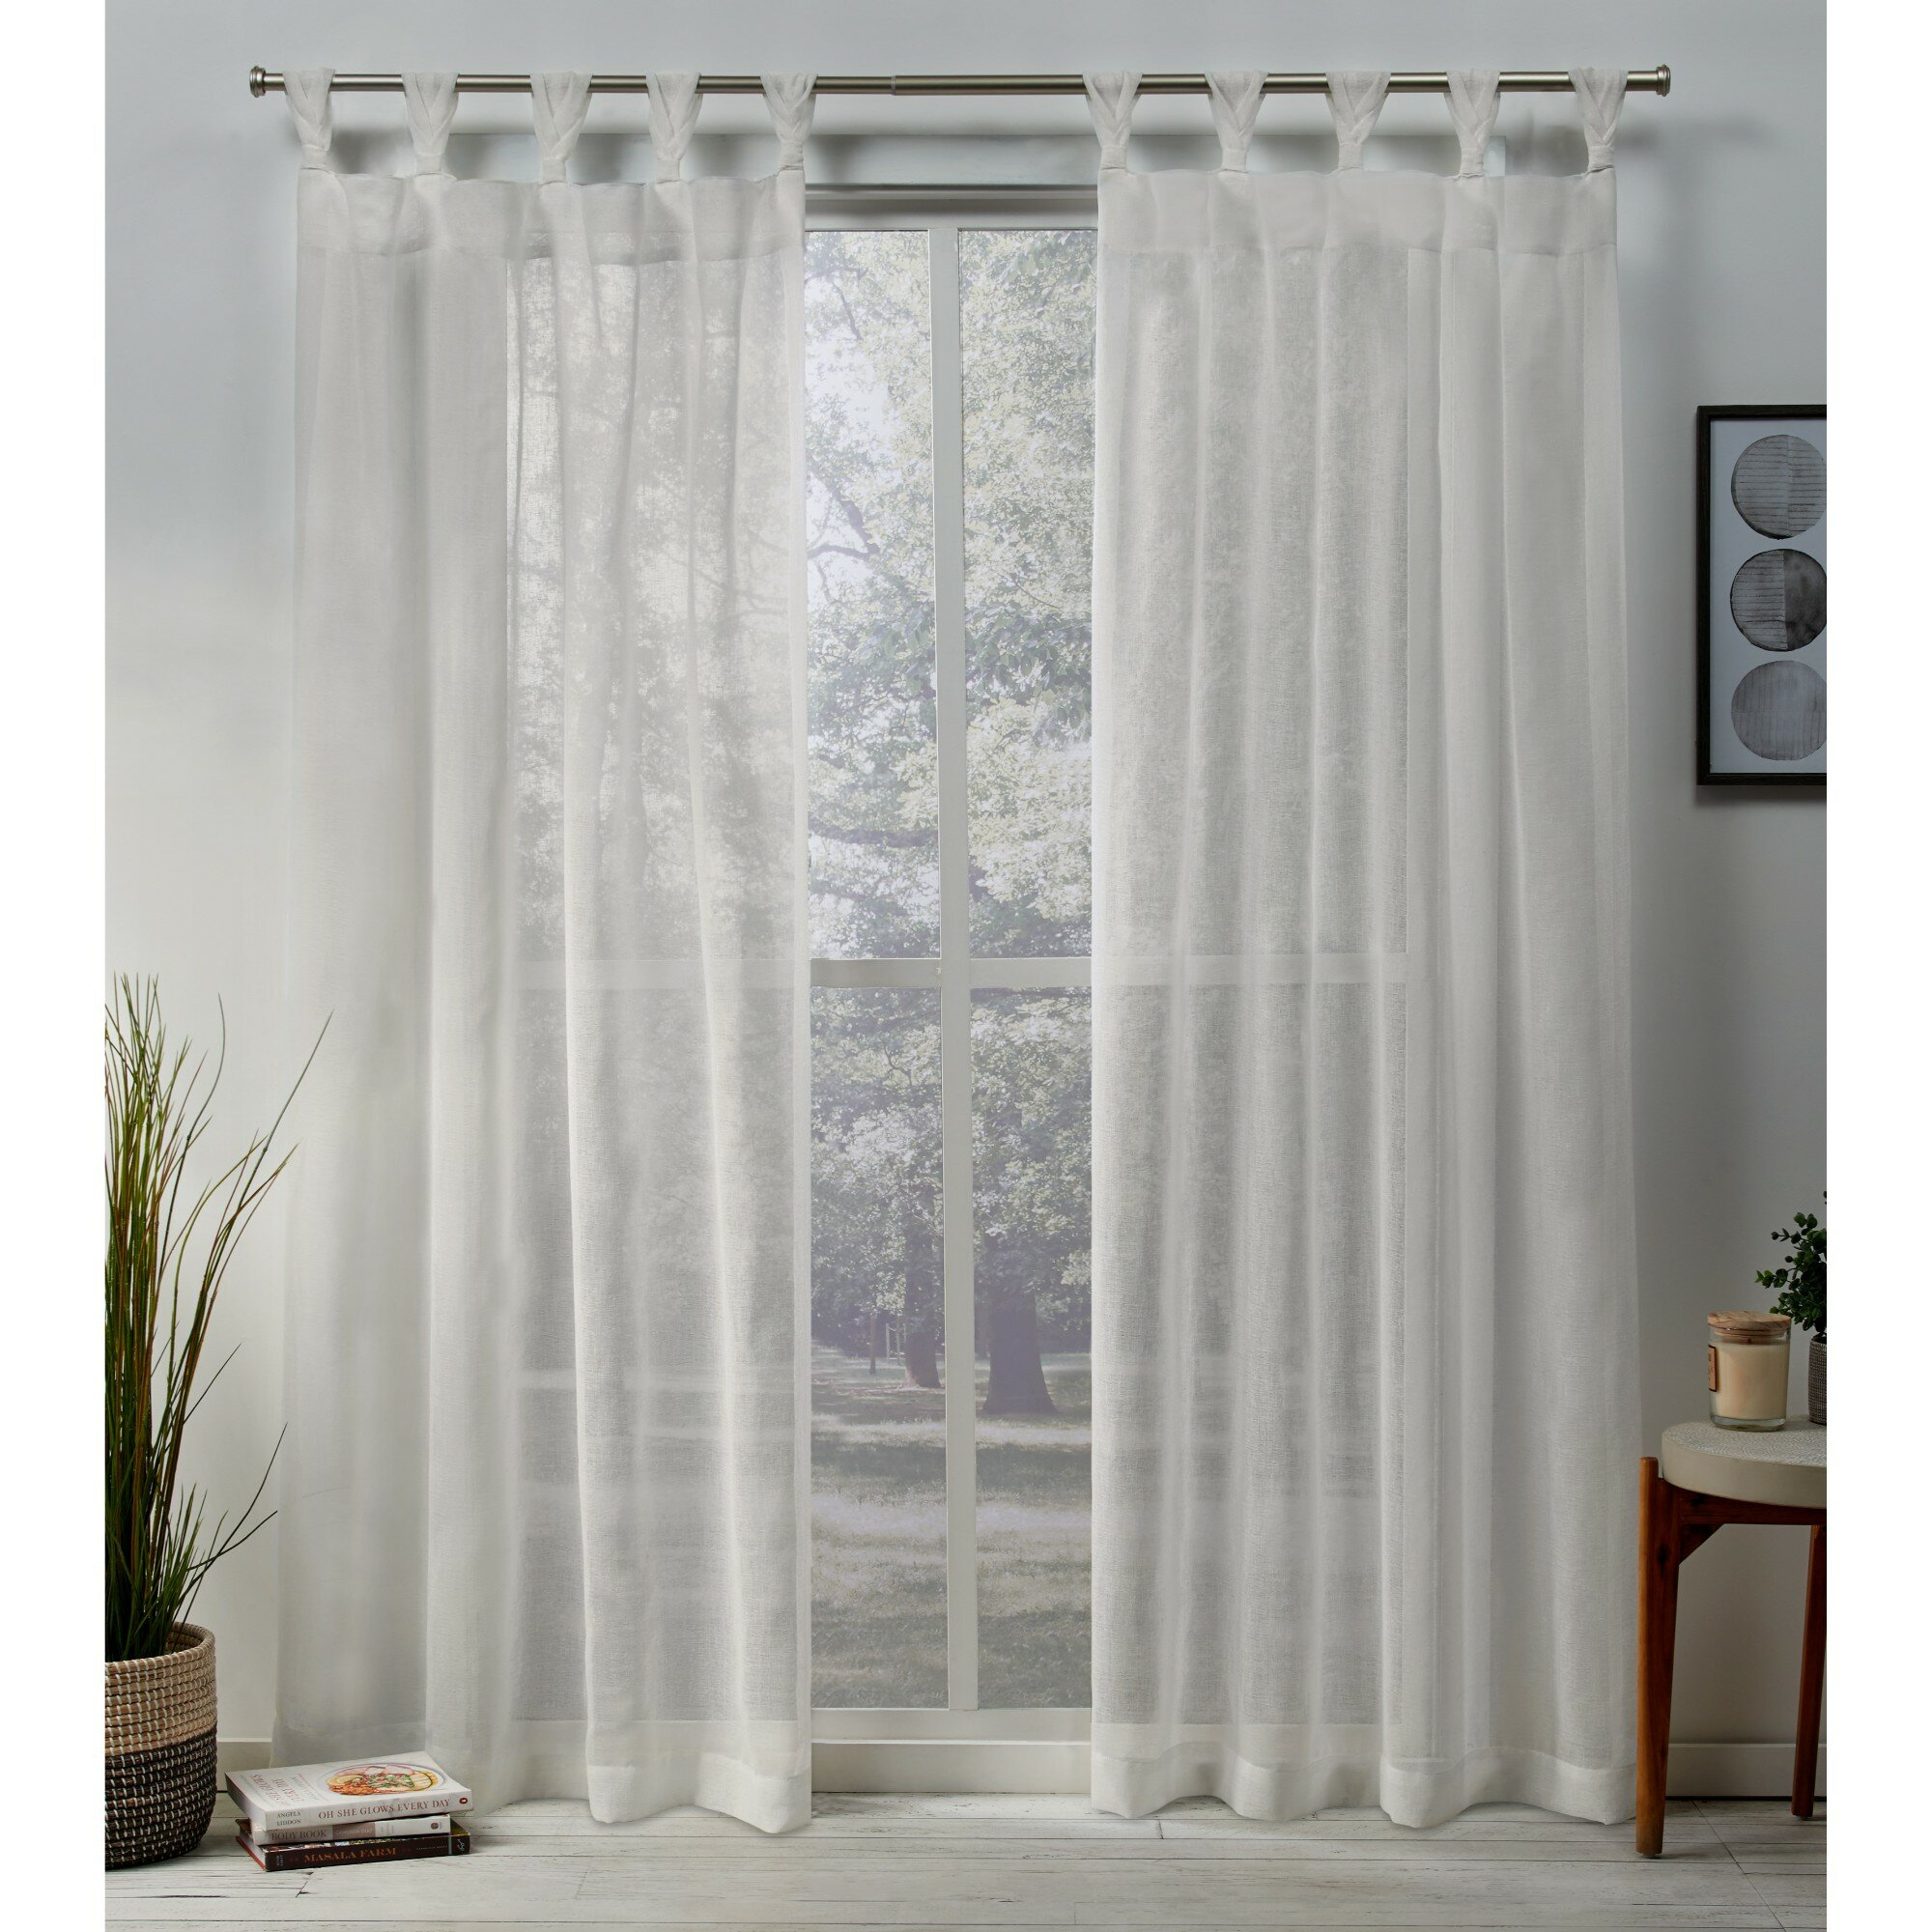 Mirfield Braided Solid Color Sheer Tab Top Curtain Panels Within Knotted Tab Top Window Curtain Panel Pairs (View 15 of 20)